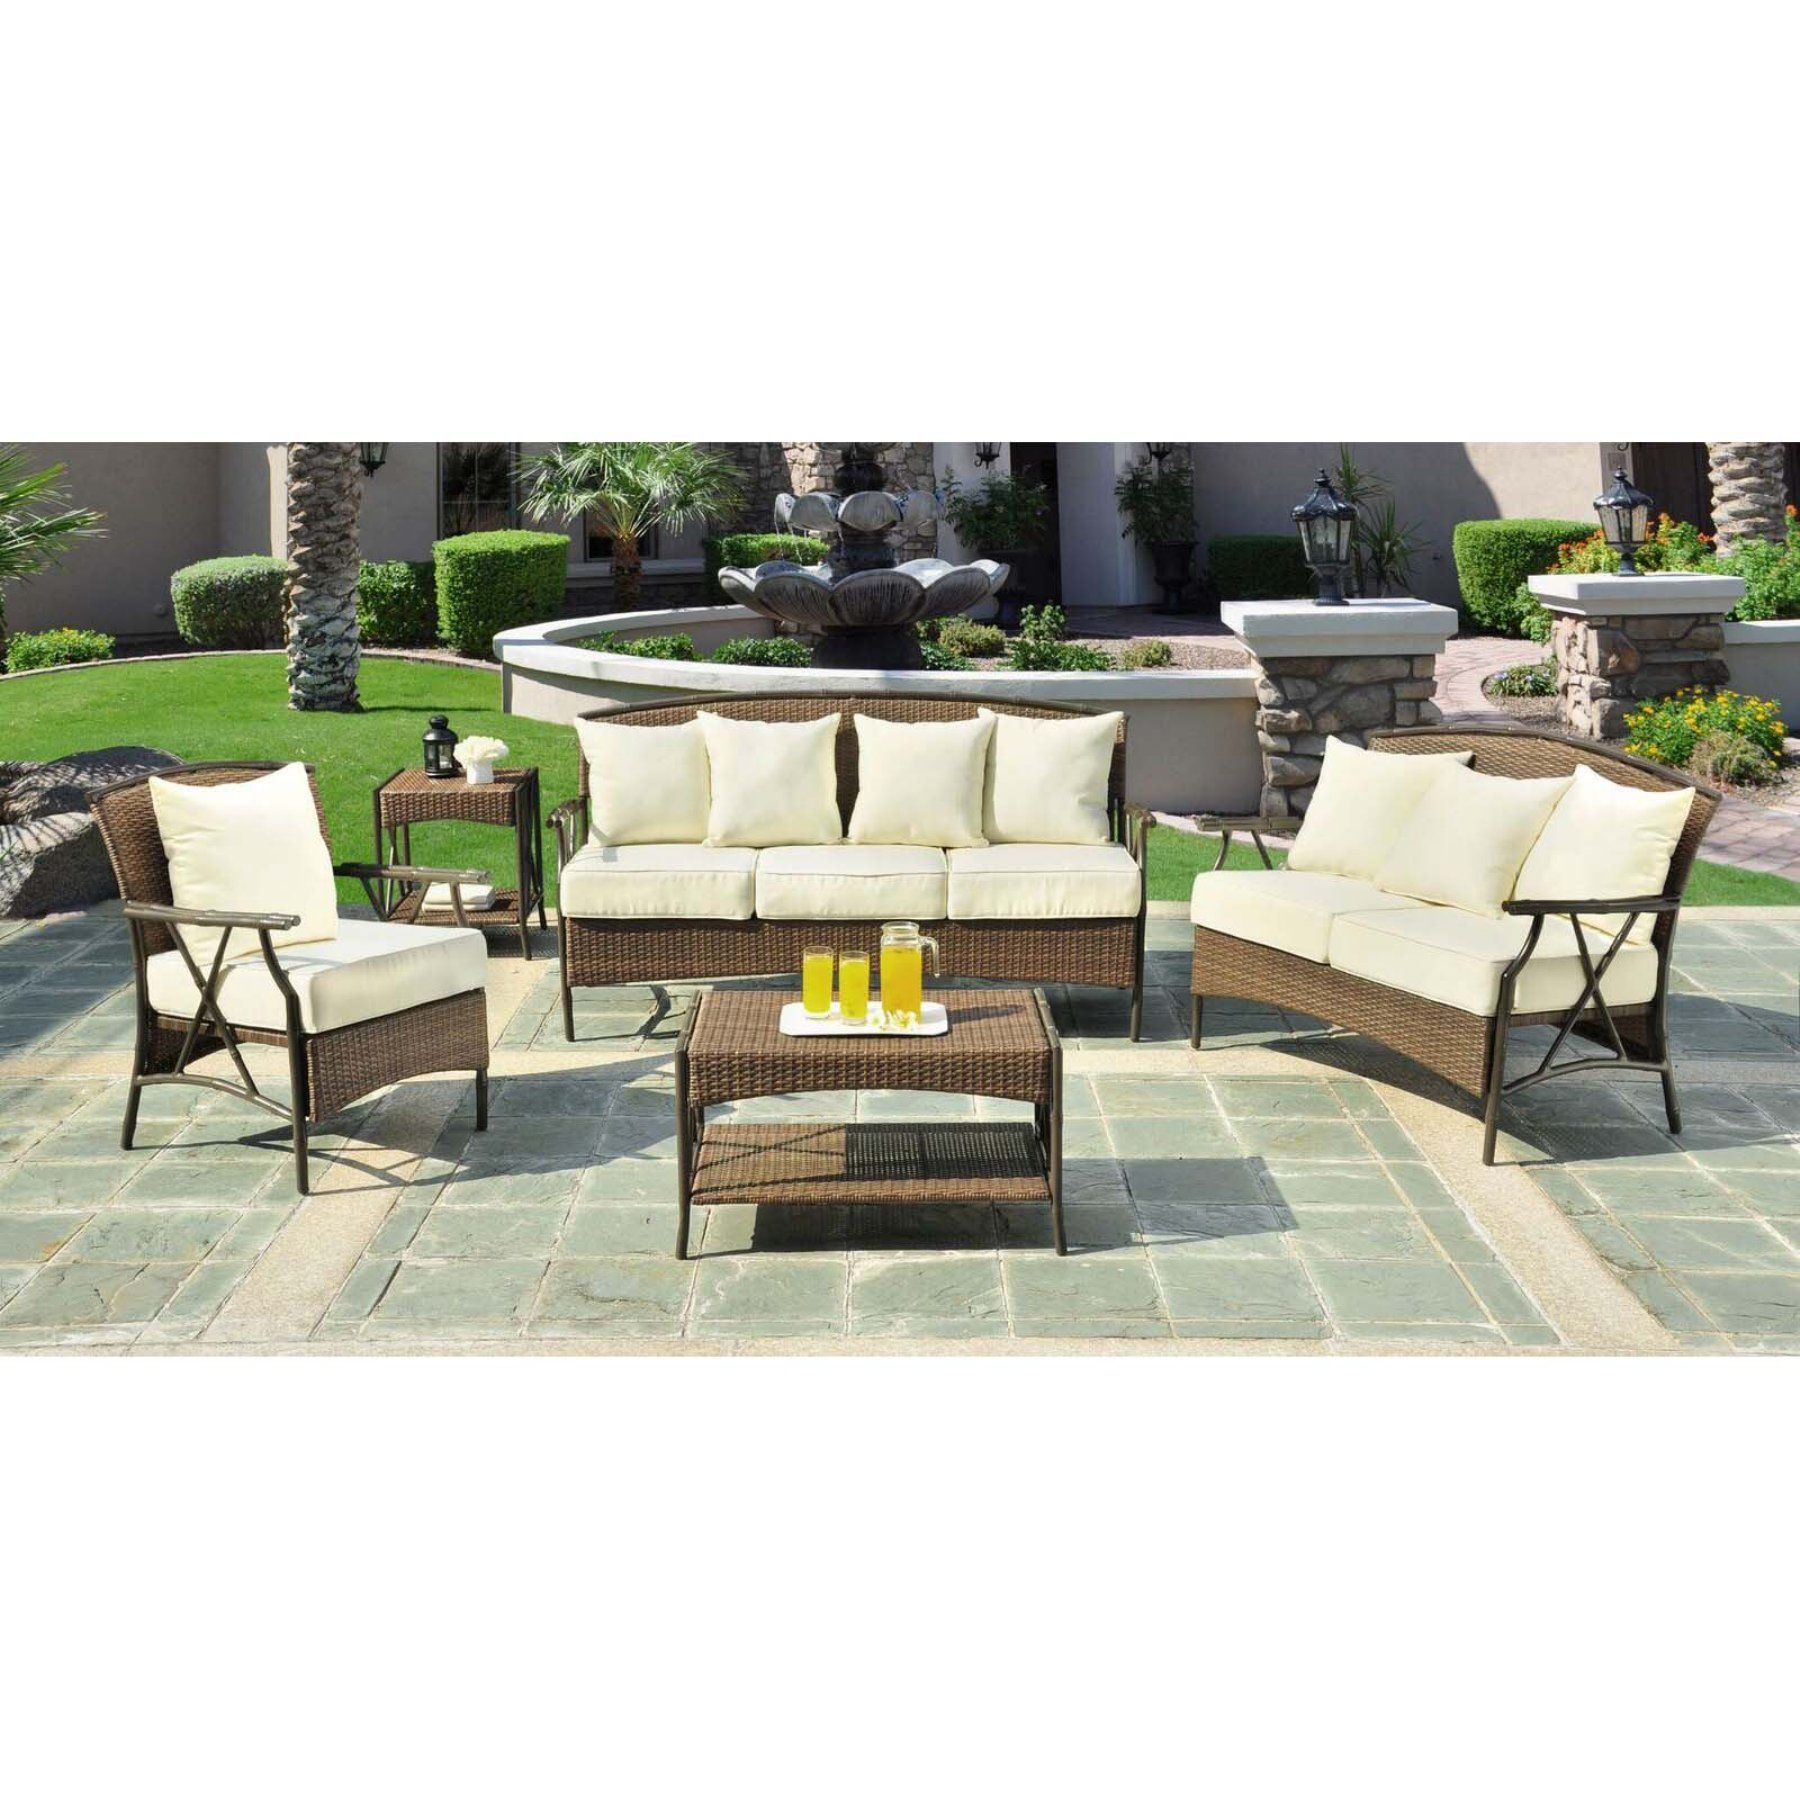 Outdoor Panama Jack Rum Cay 5 Piece Wicker Patio Conversation Set